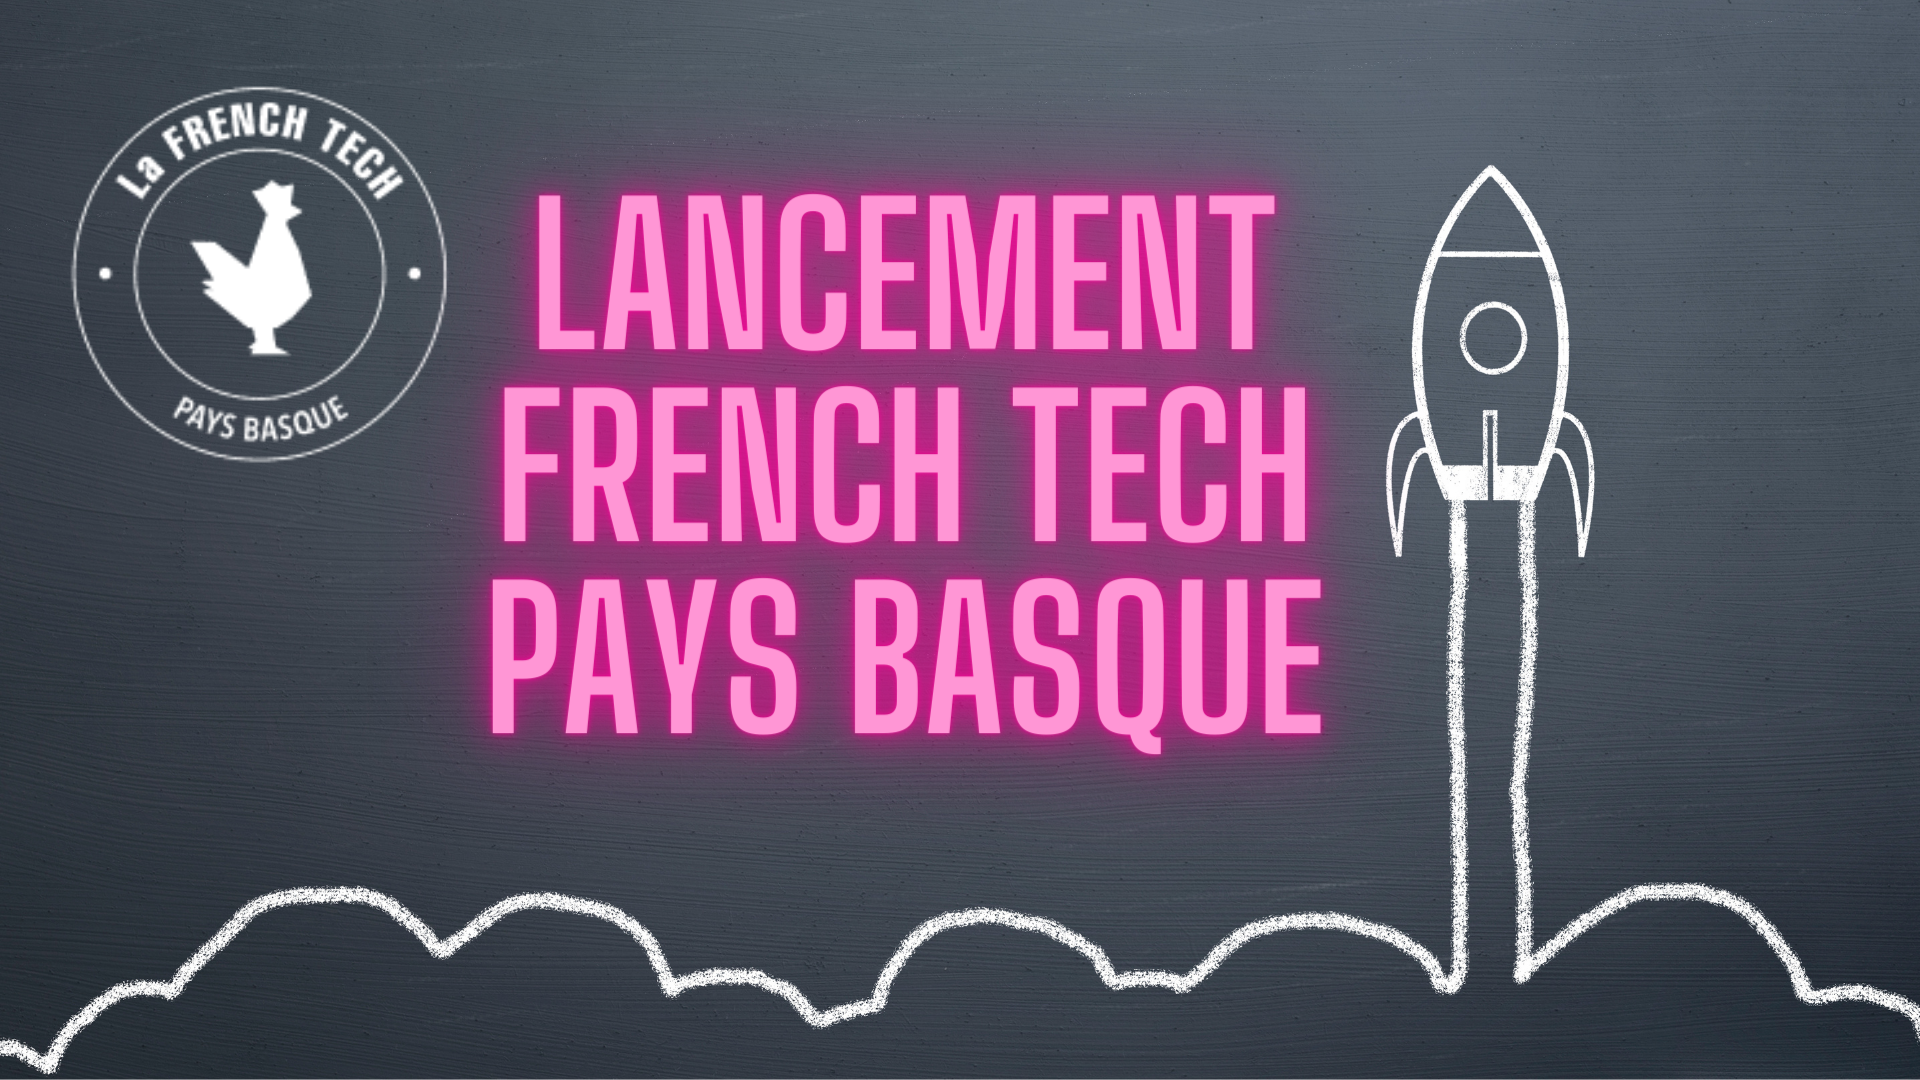 Lancement de la French Tech Pays Basque